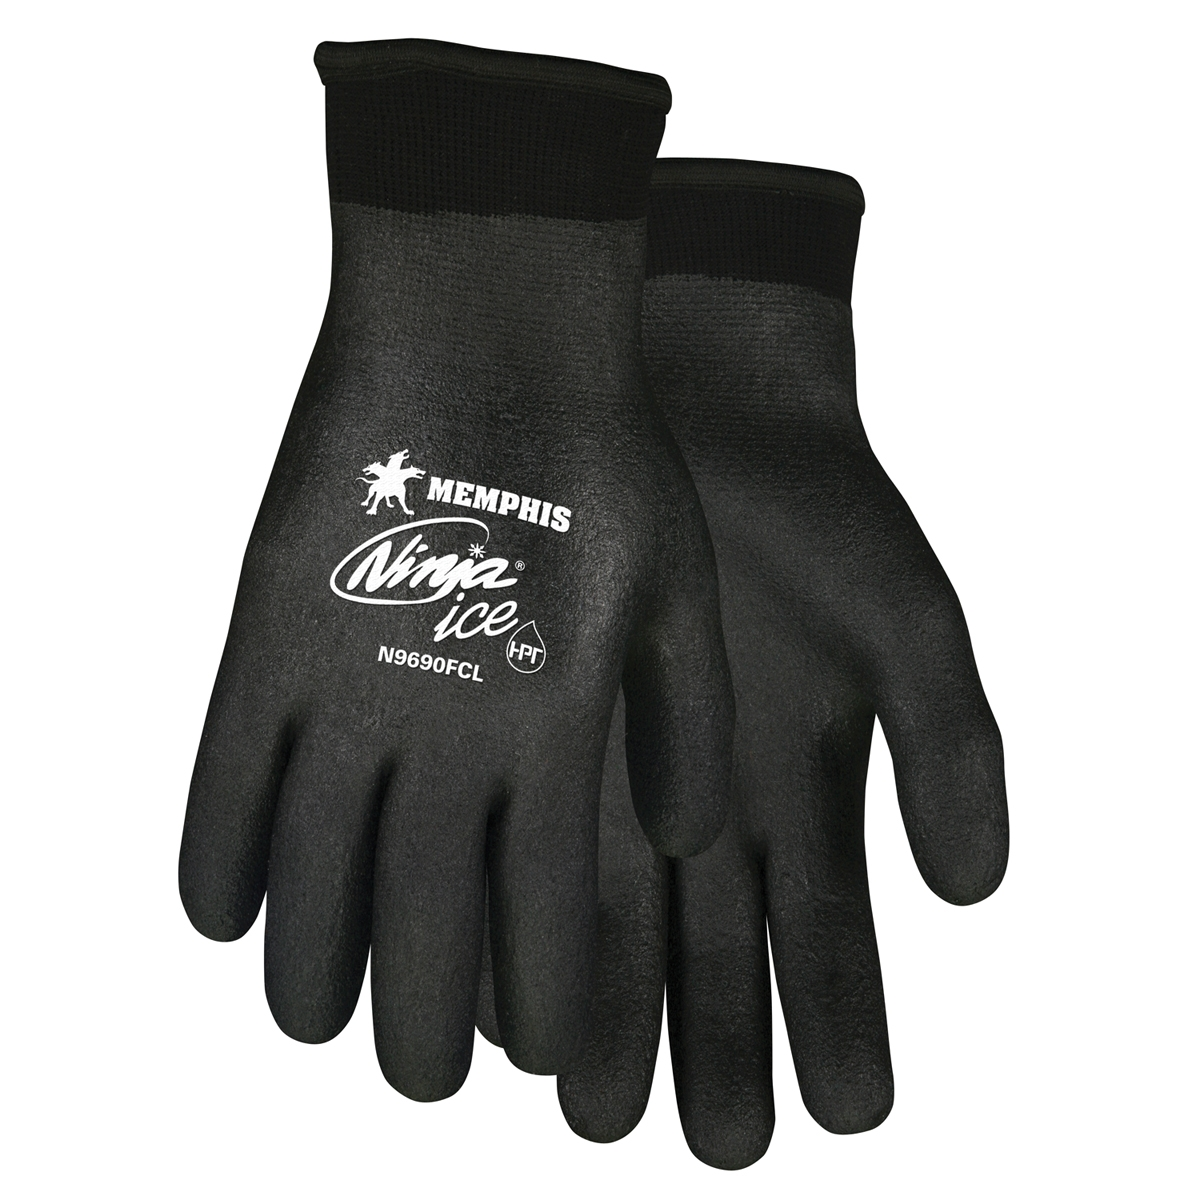 N9690FC : Ninja Ice FC HTP Fully Coated Glove